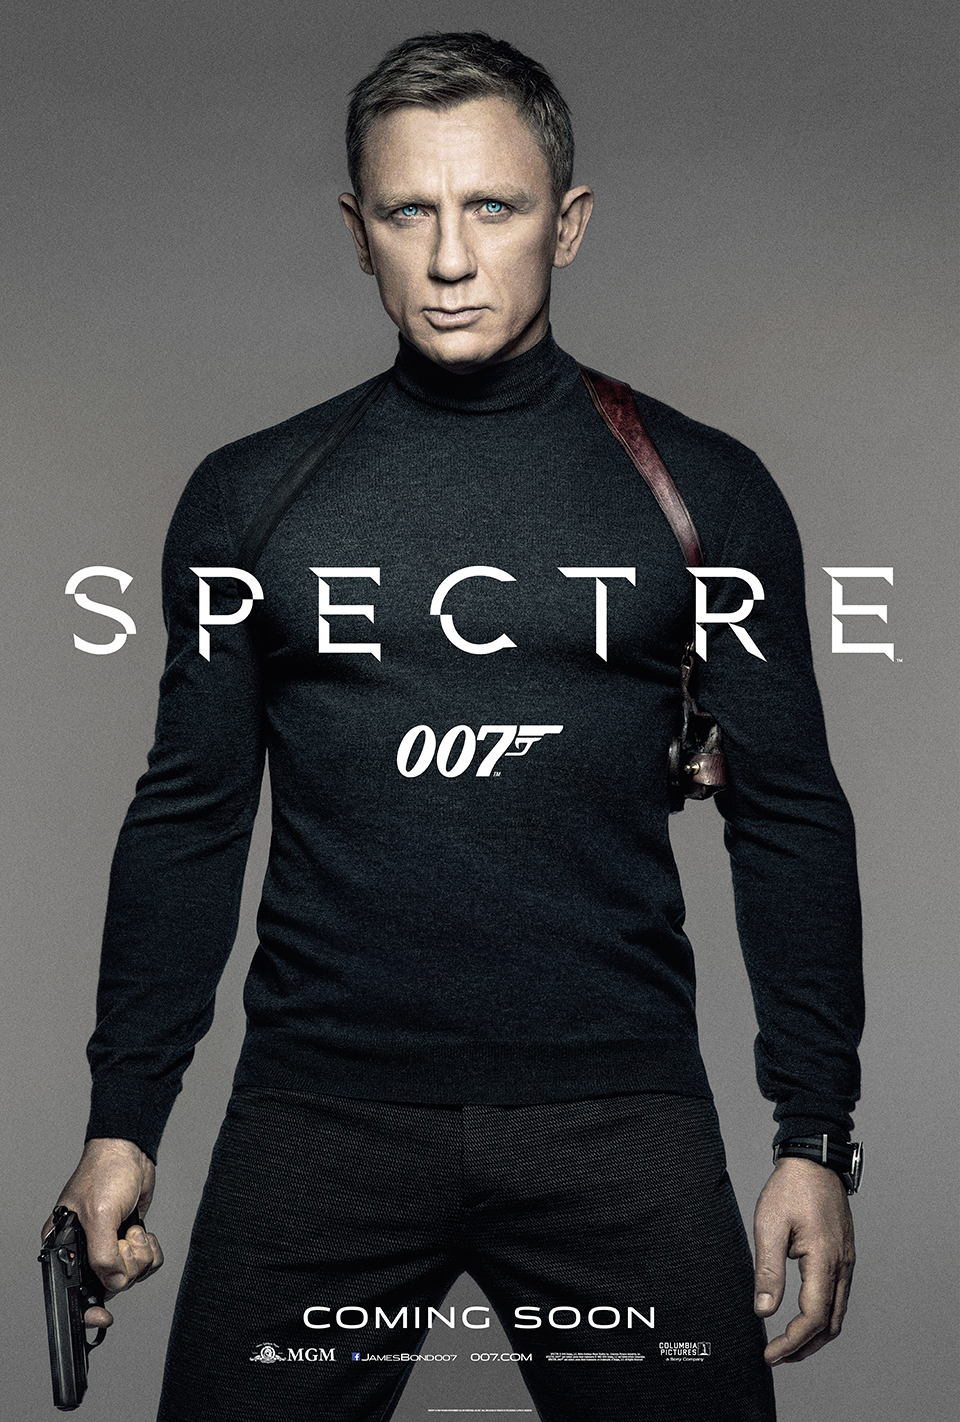 Is It Worth Paying For A Ticket Spectre 2015 Film